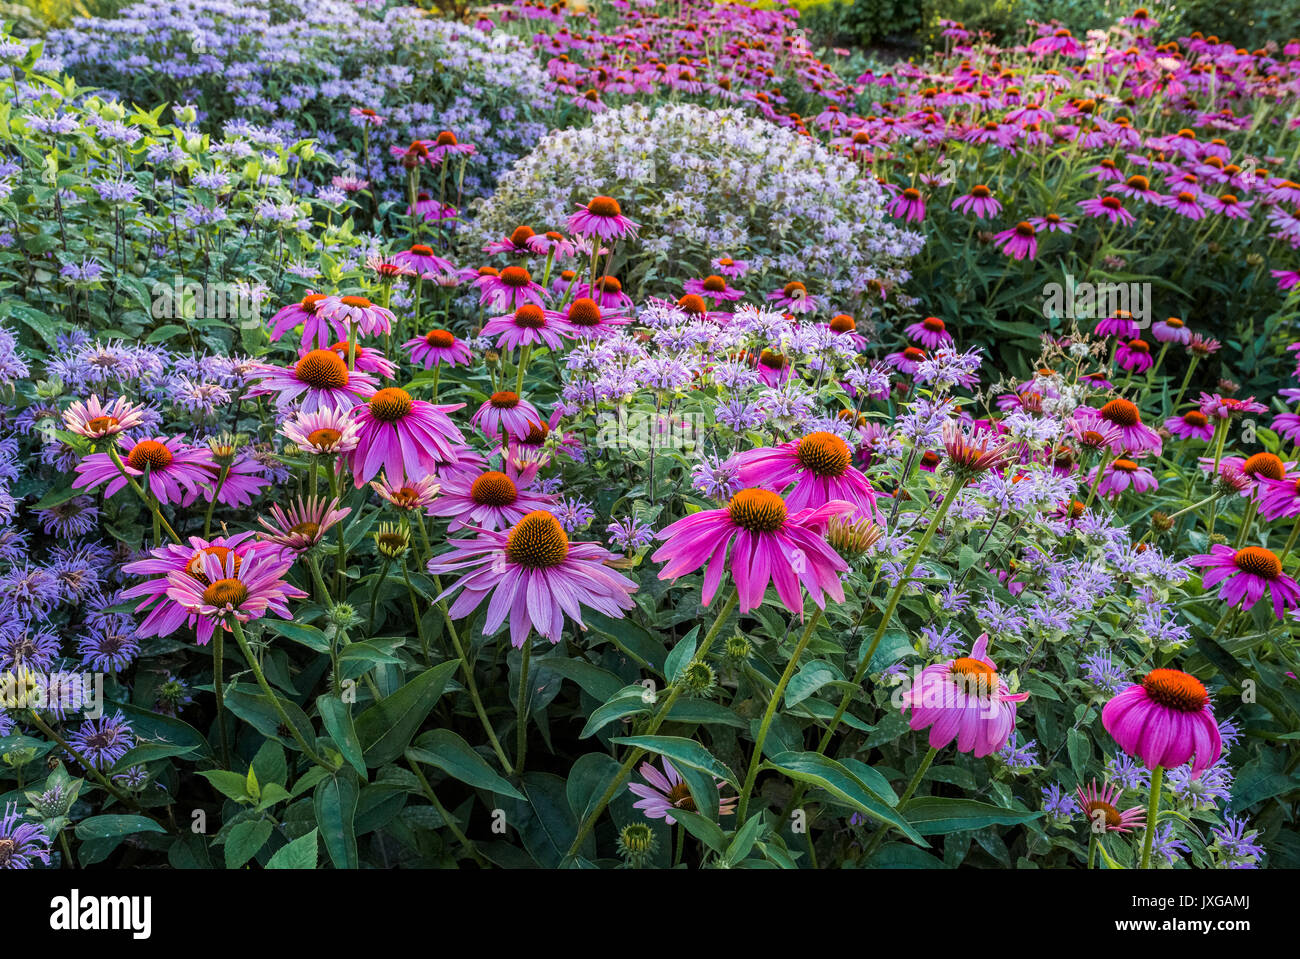 Medicine Wheel Garden High Resolution Stock Photography And Images Alamy